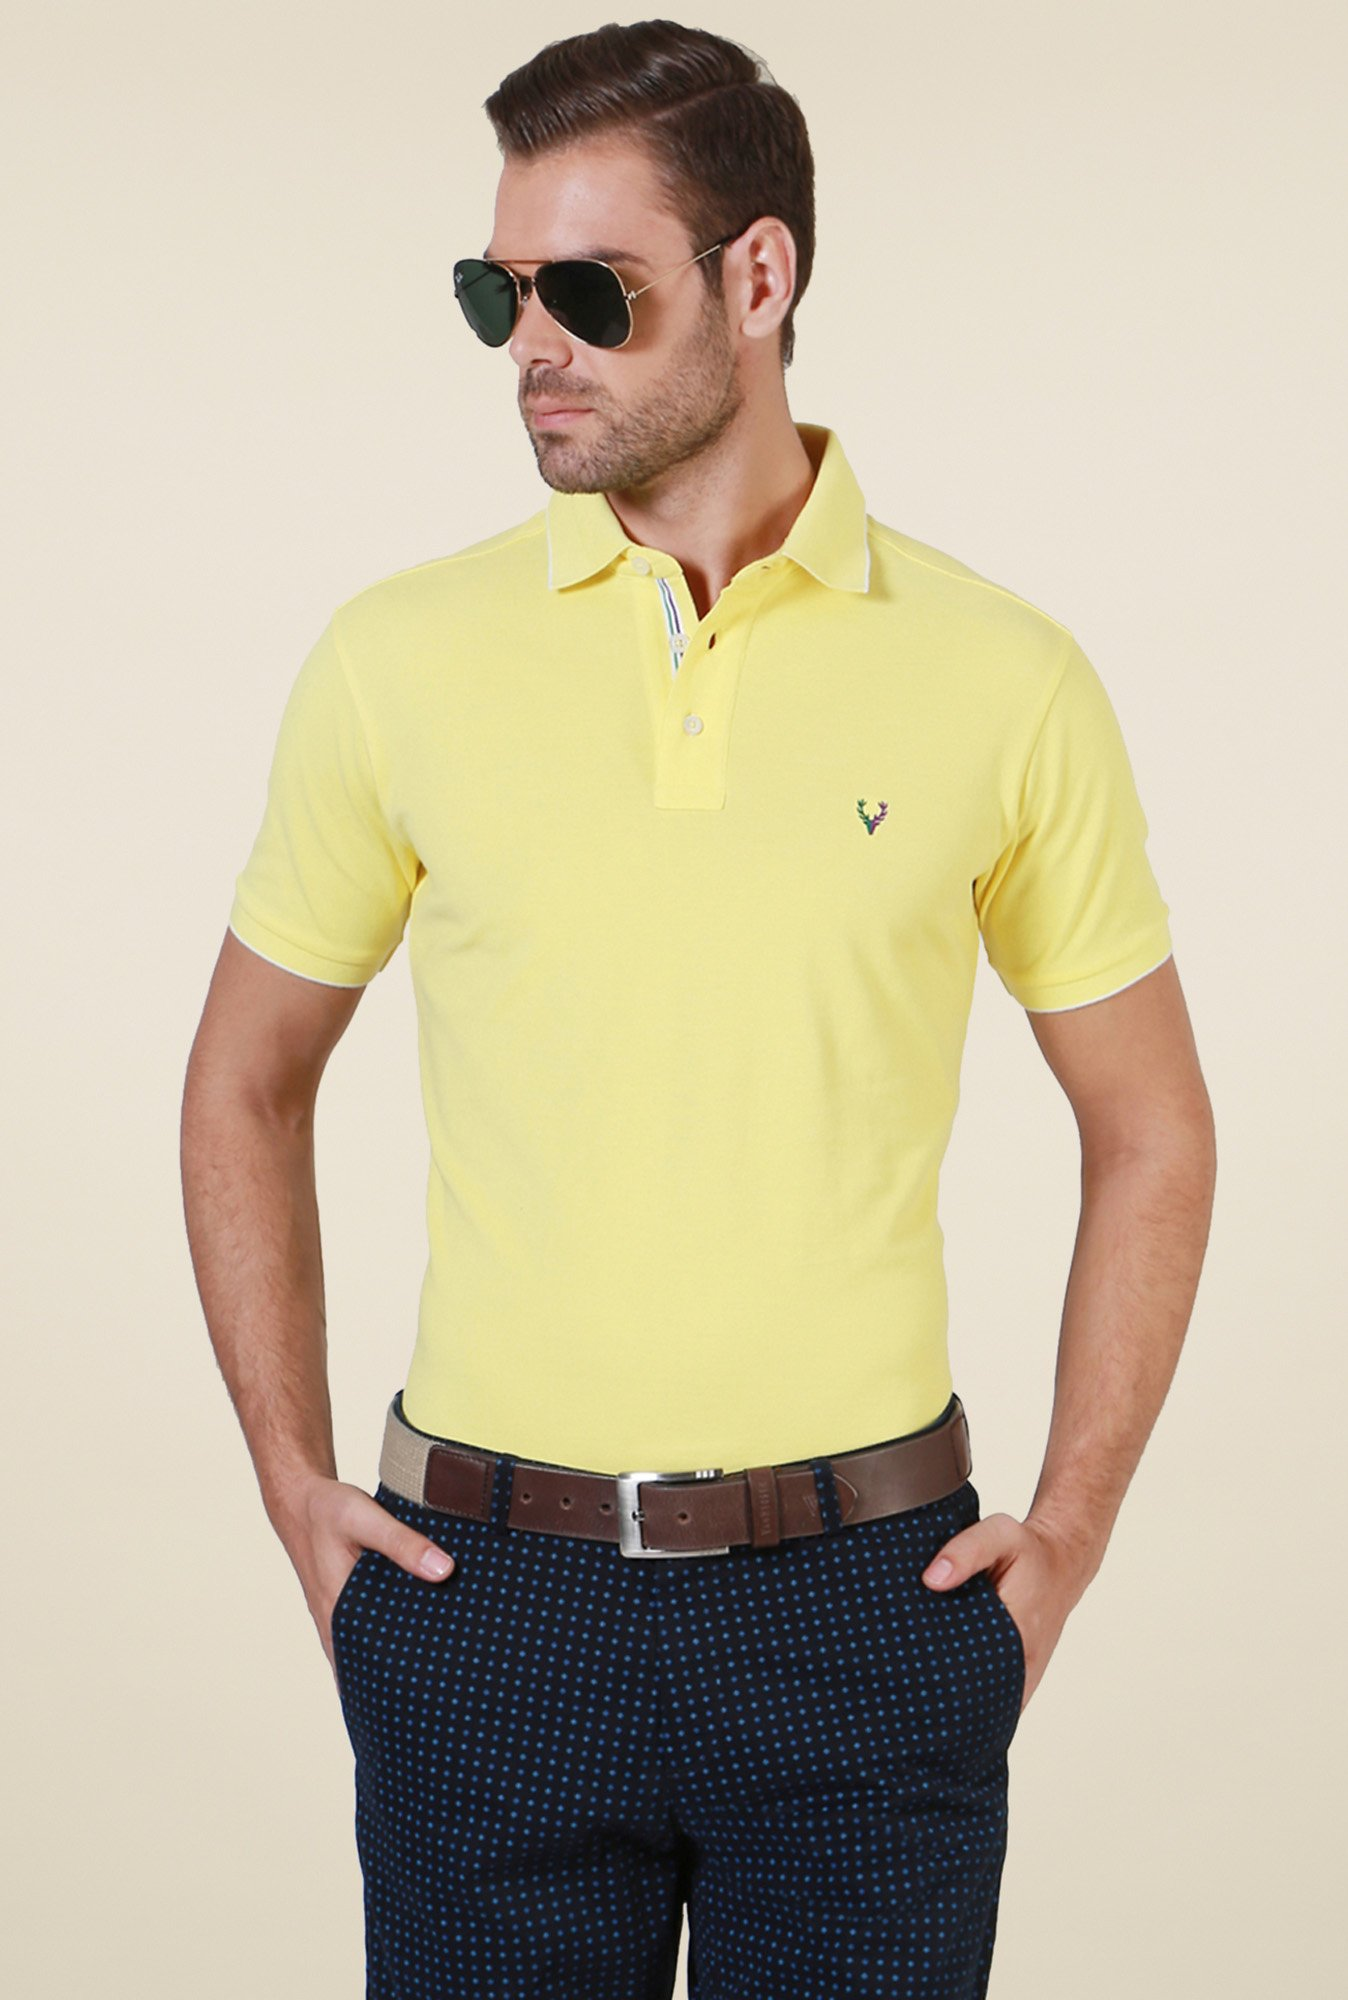 Allen Solly Yellow Half Sleeves T-Shirt